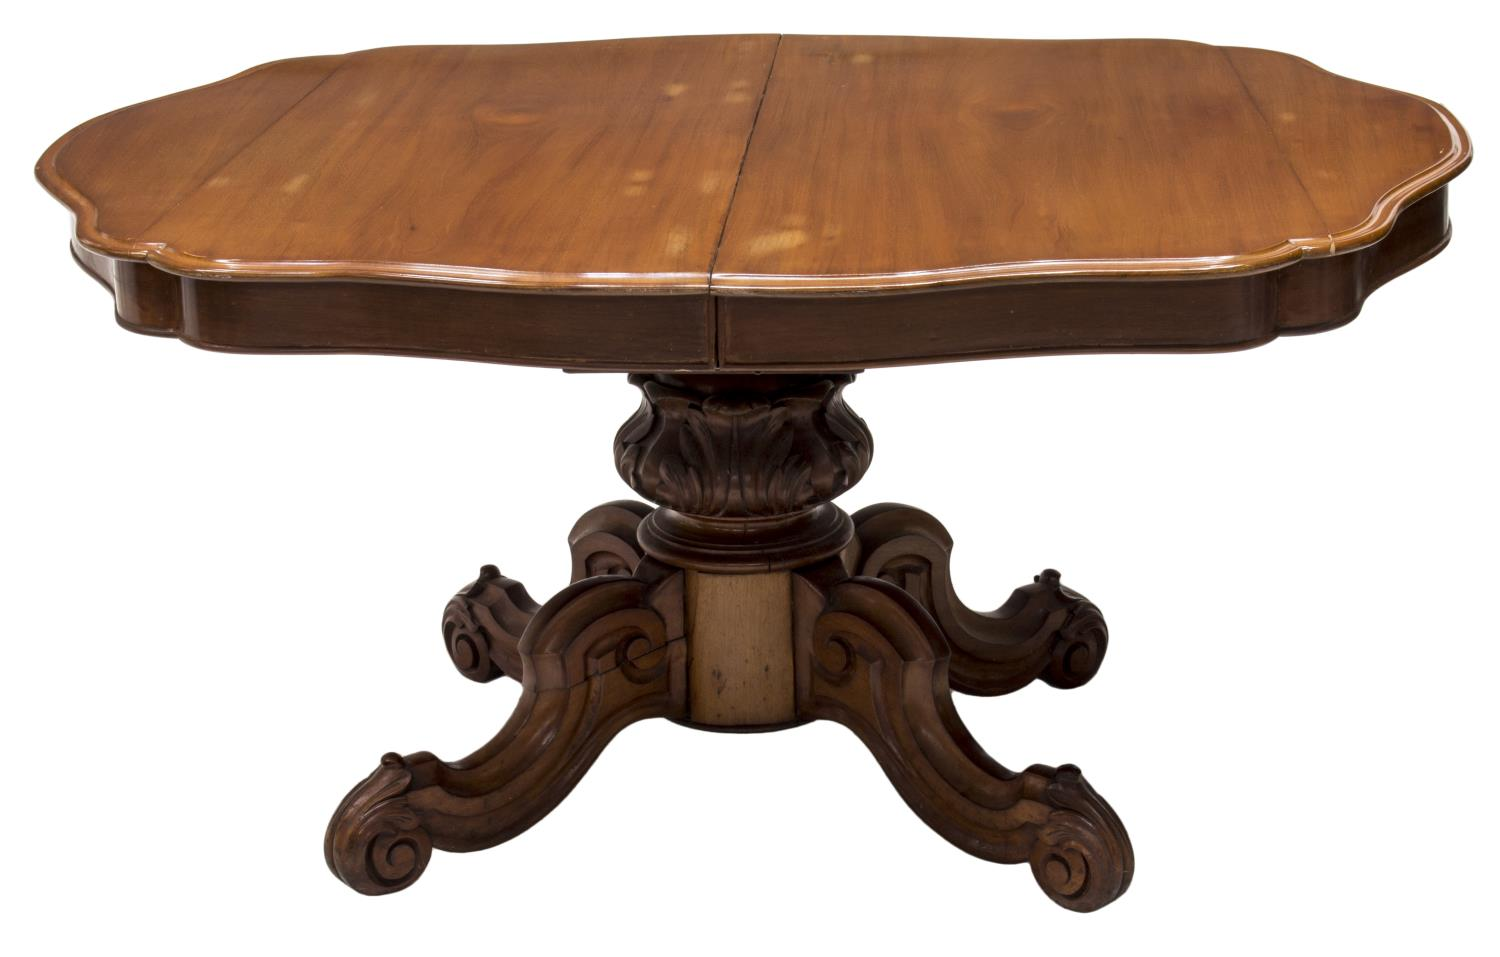 AMERICAN VICTORIAN CARVED MAHOGANY DINING TABLE The  : 198 from www.austinauction.com size 1500 x 957 jpeg 83kB